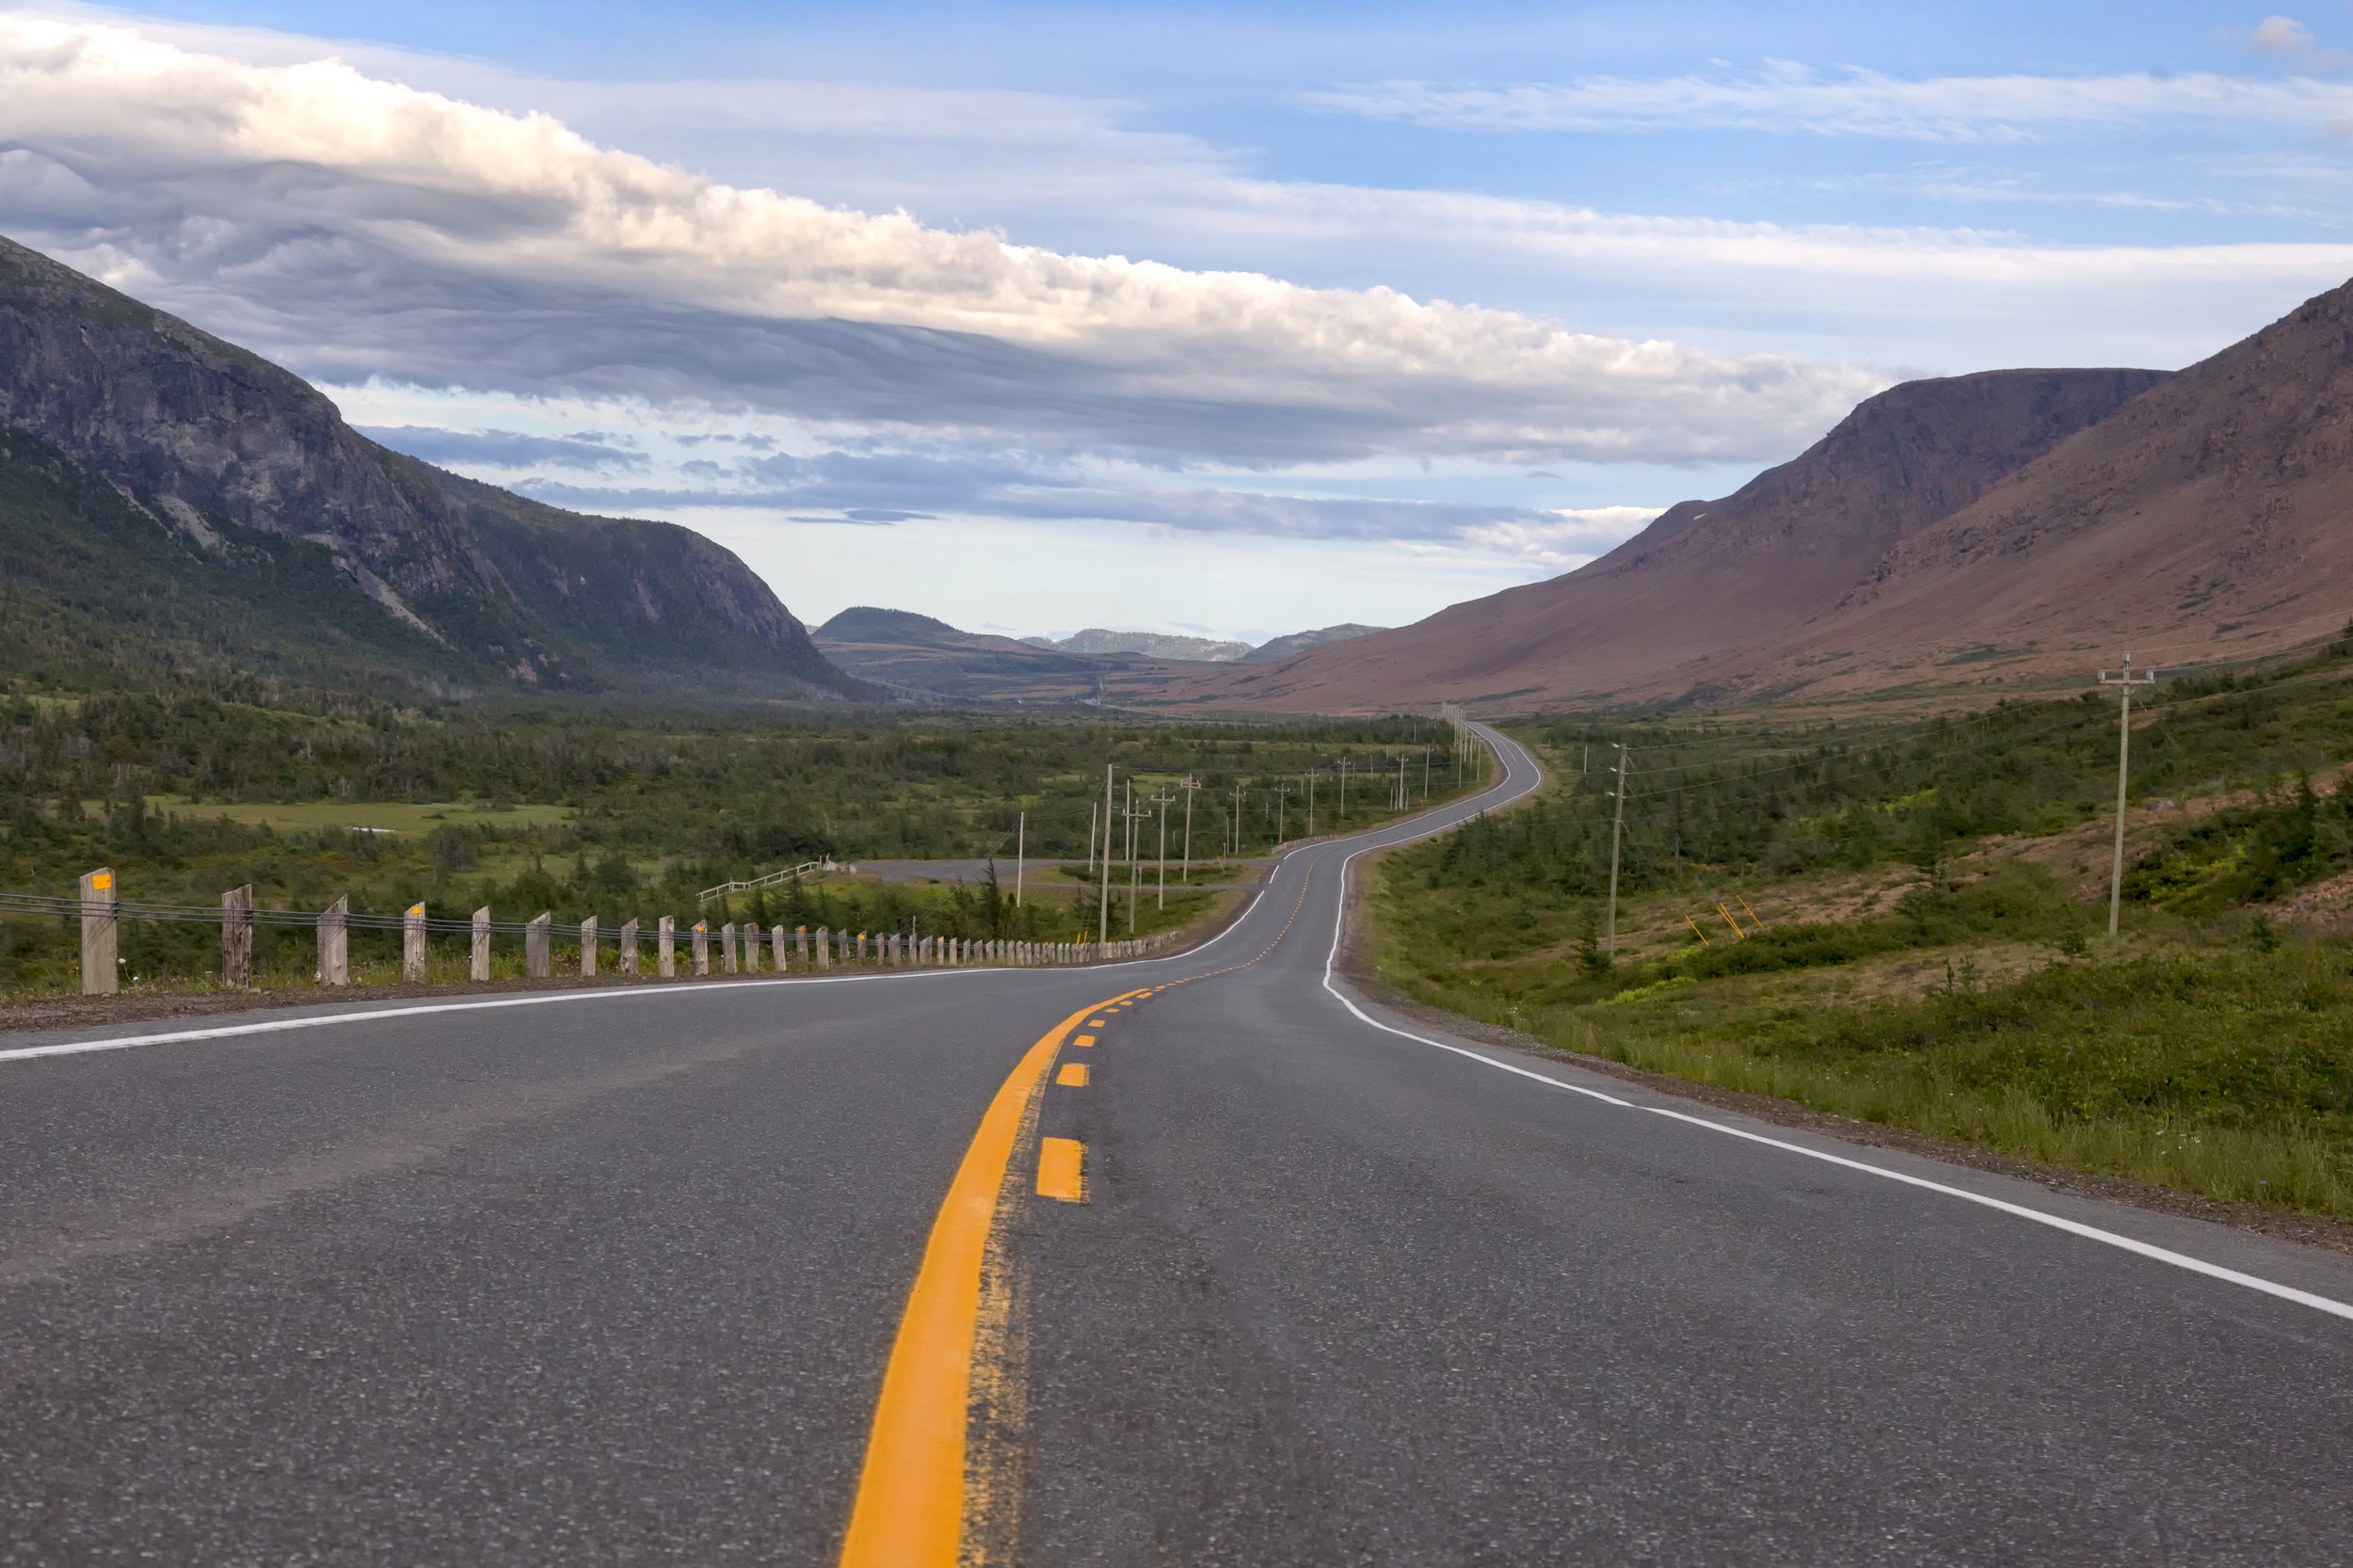 The road to the Tablelands - Across the Blue Planet